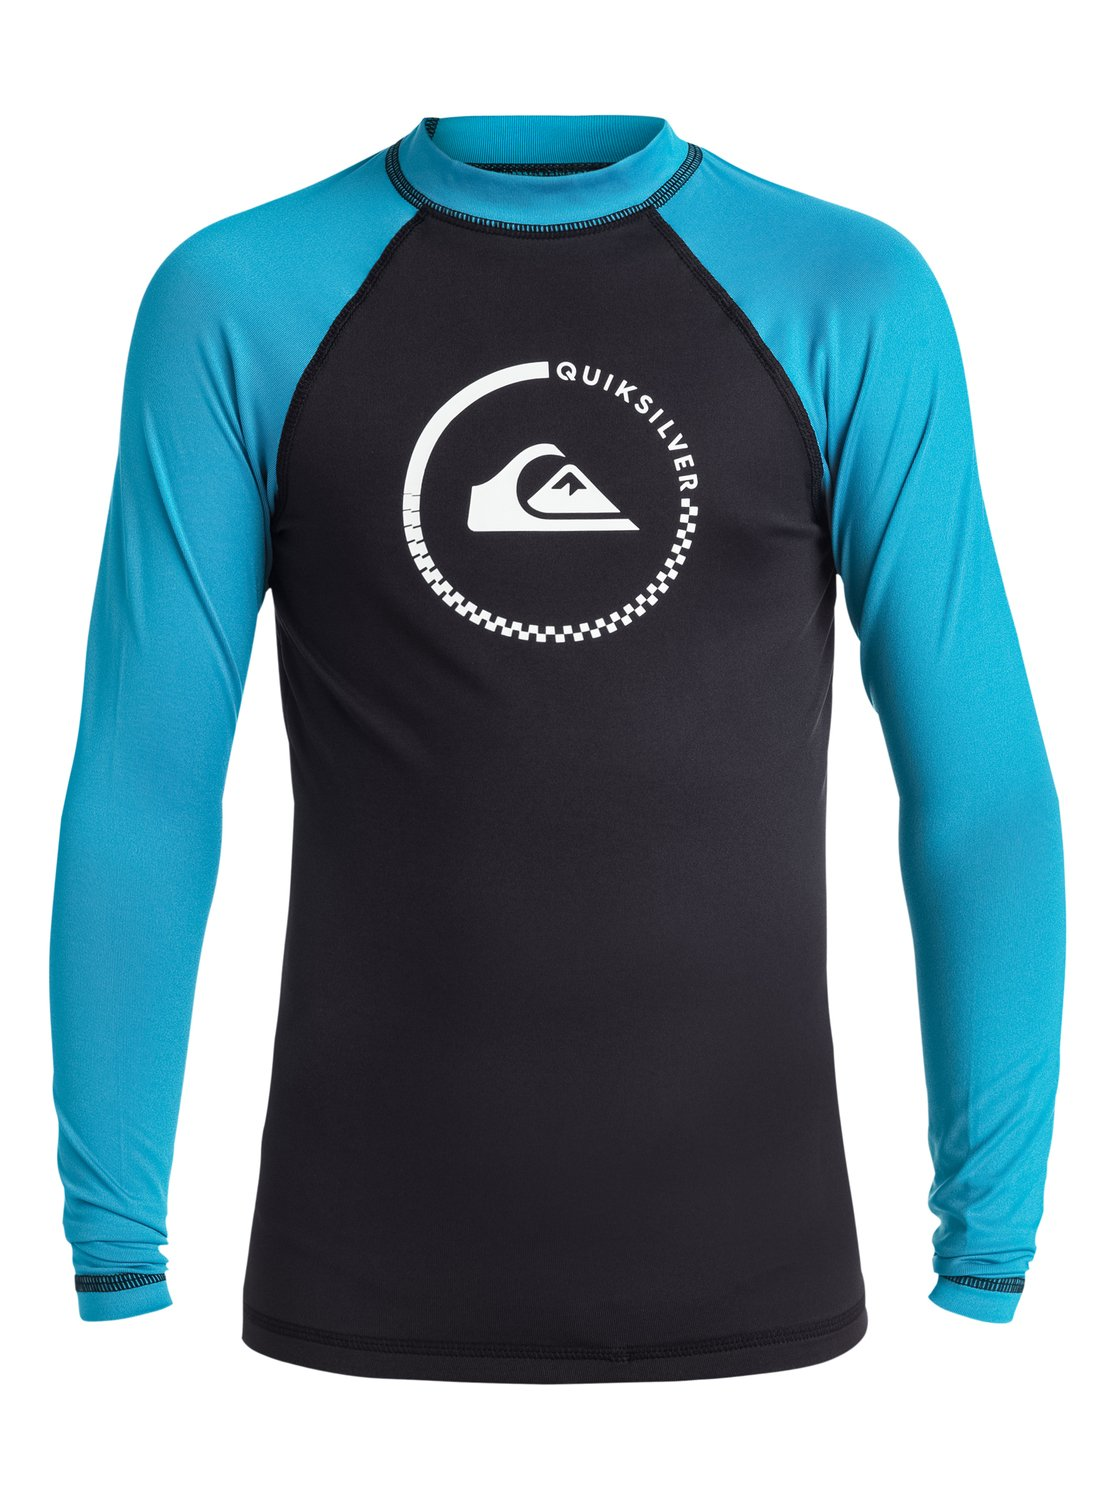 Boy's 8-16 Lock Up Long Sleeve Rashguard от Quiksilver RU